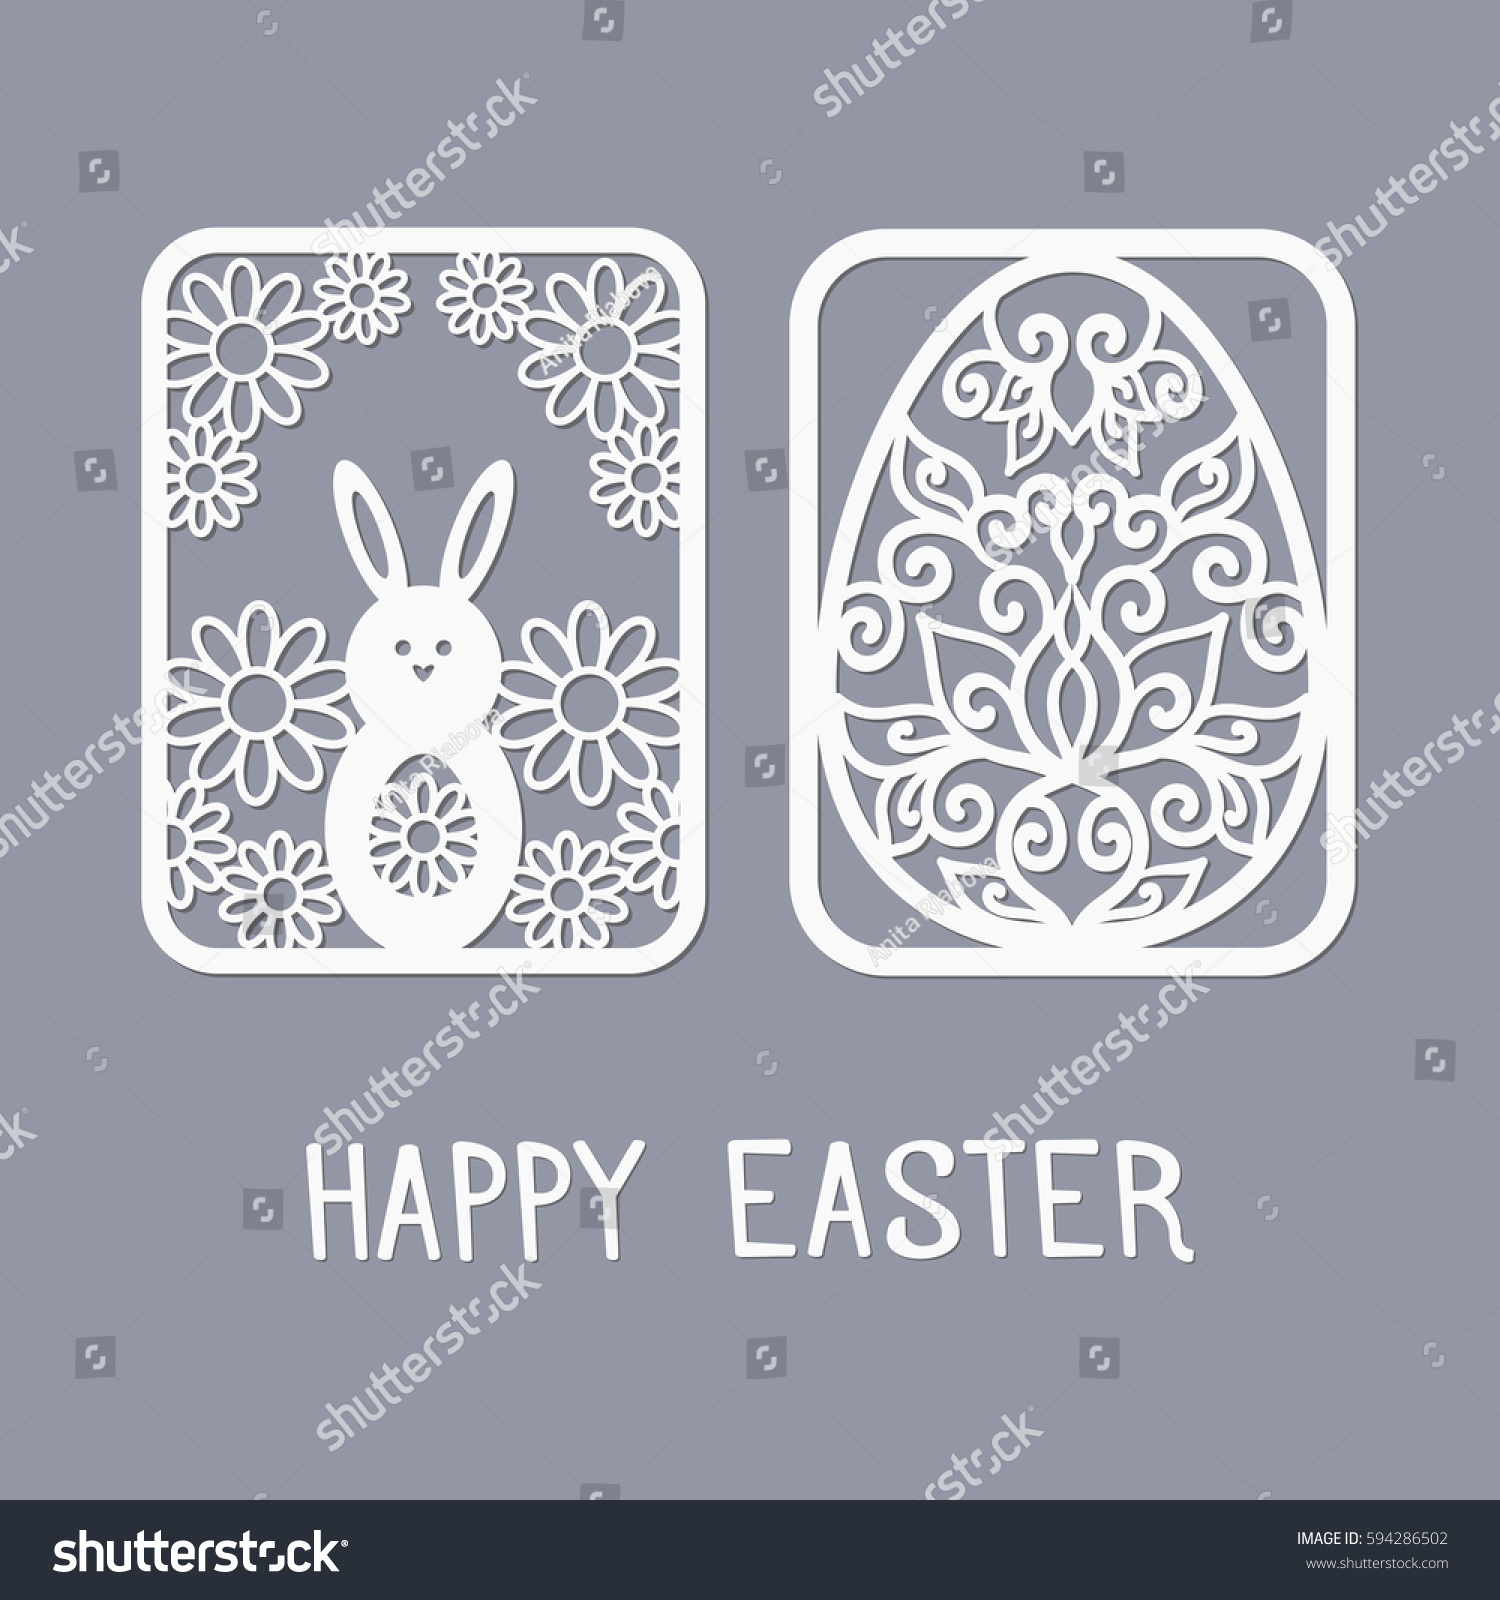 Easter Templates Laser Cutting Illustration Paper Stock Vector (2018 ...